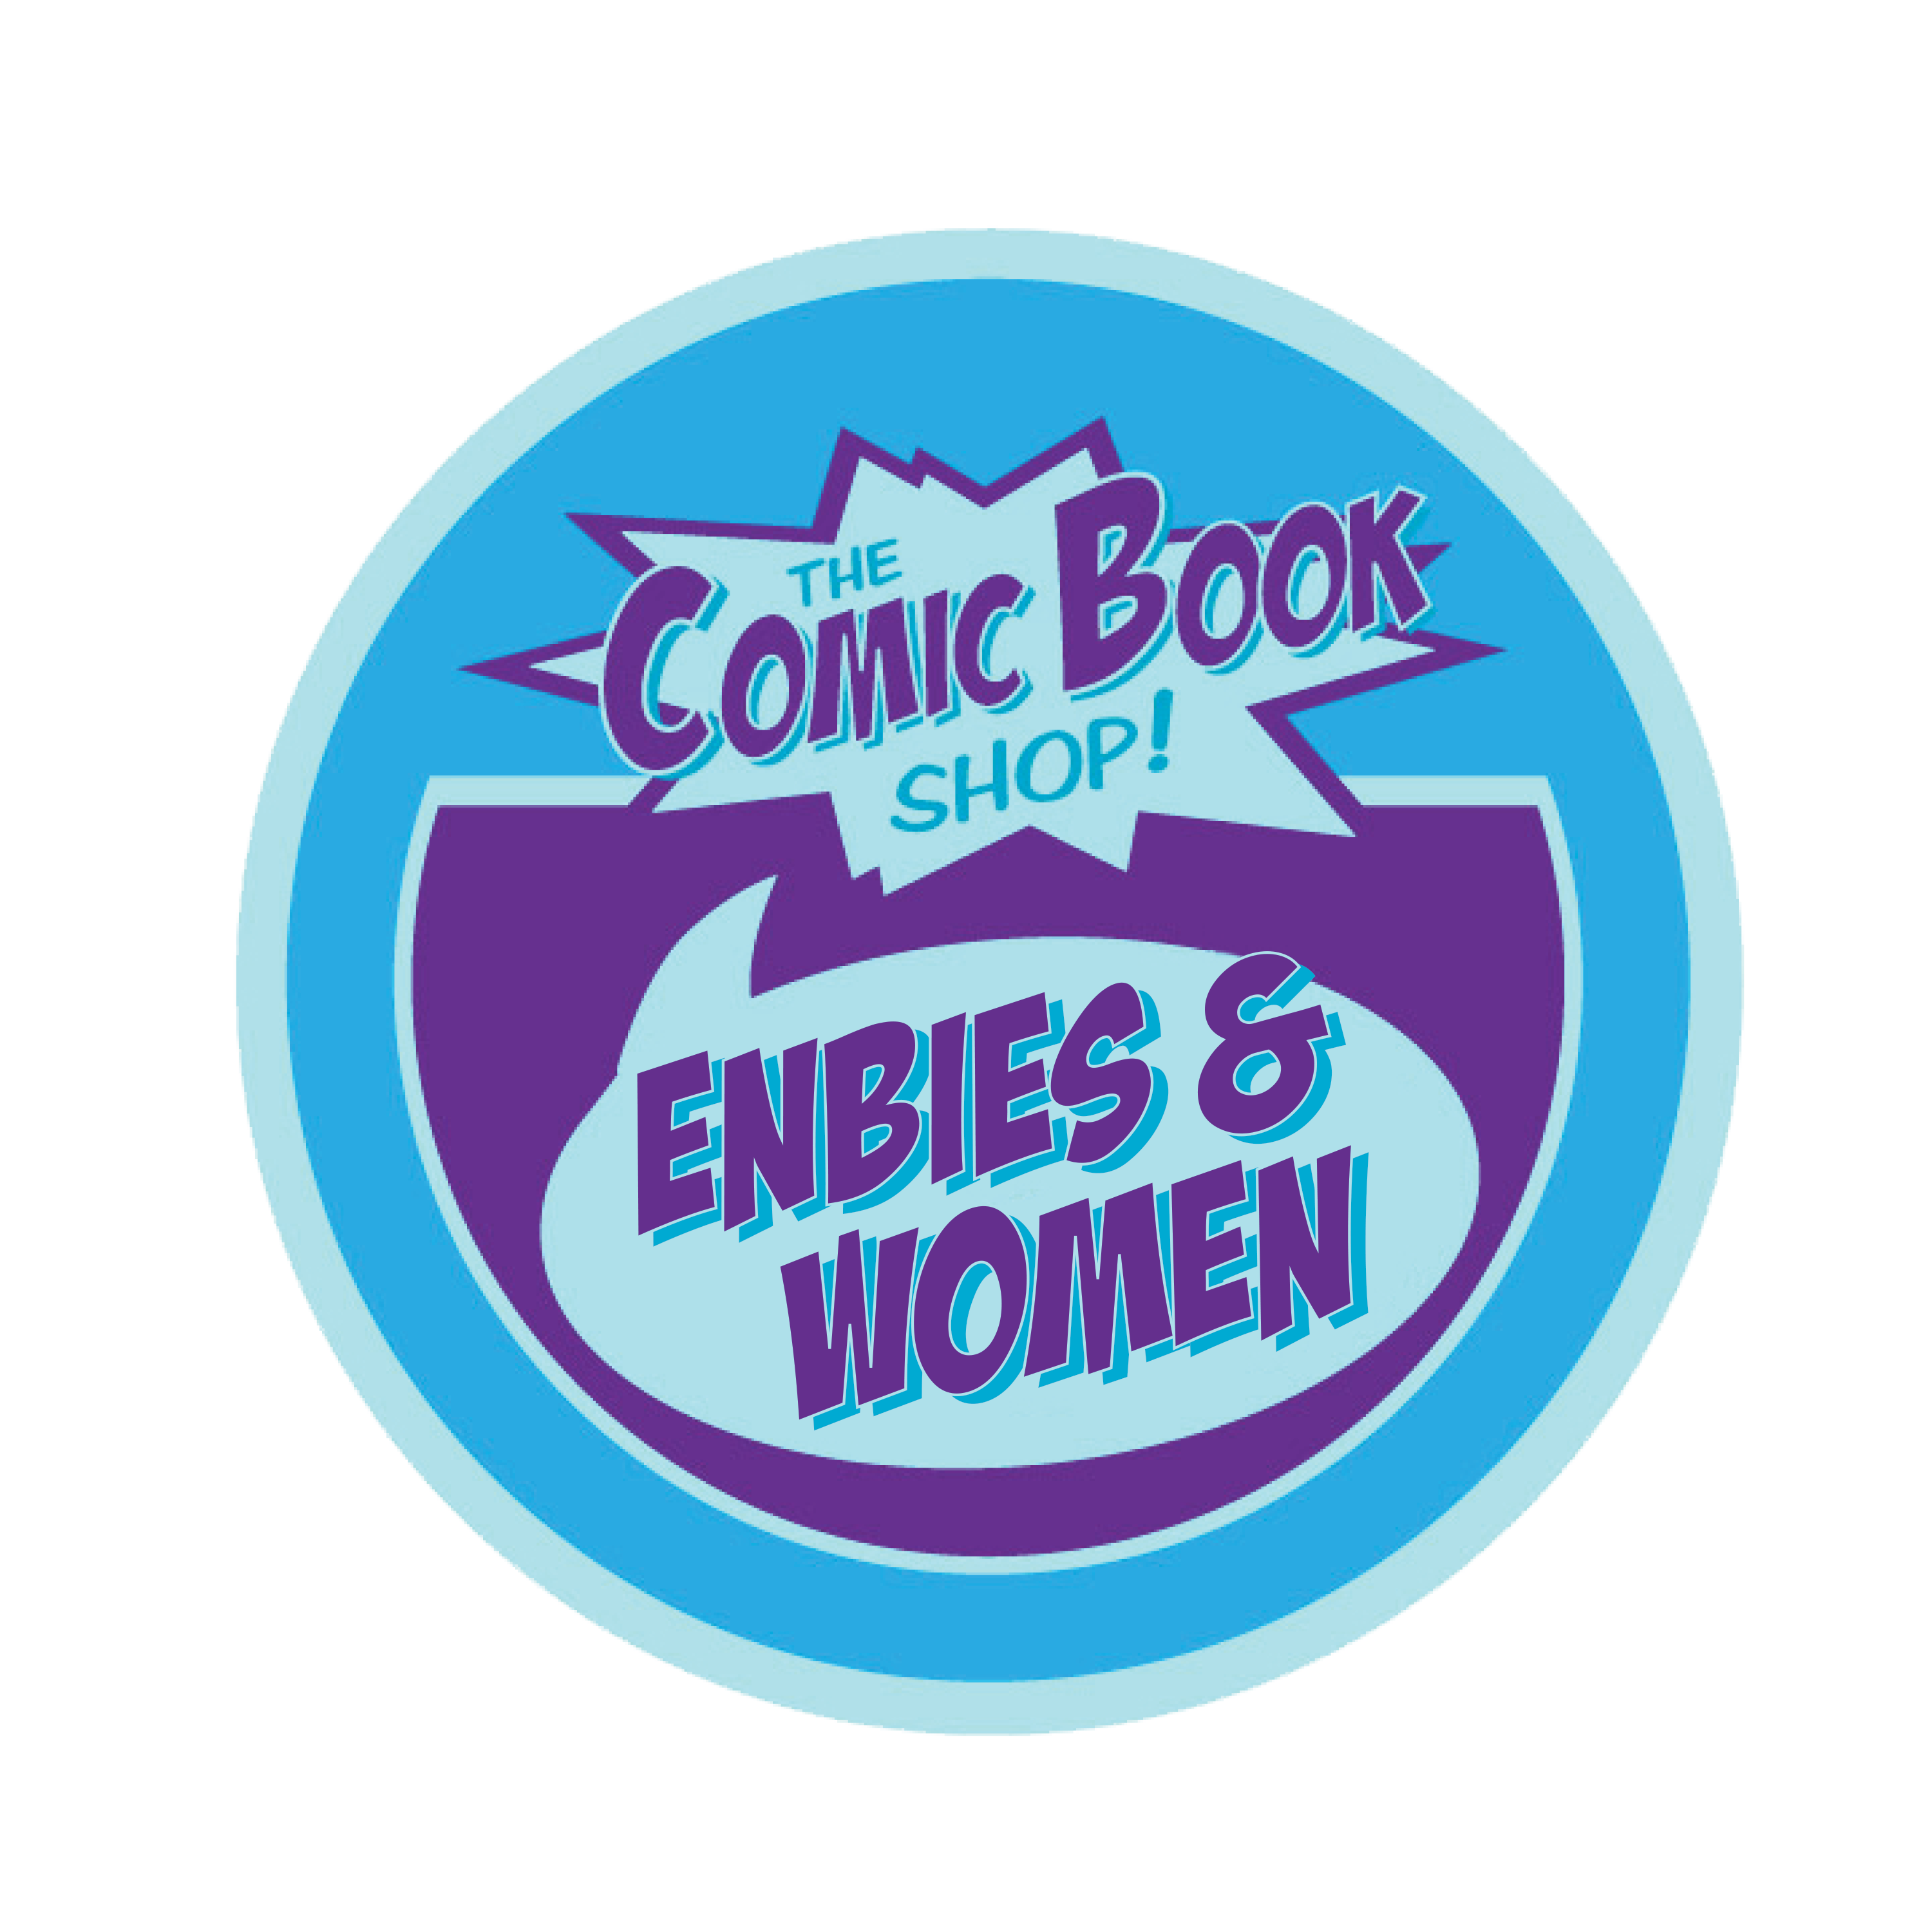 Click here to see more info on enbies & women book club